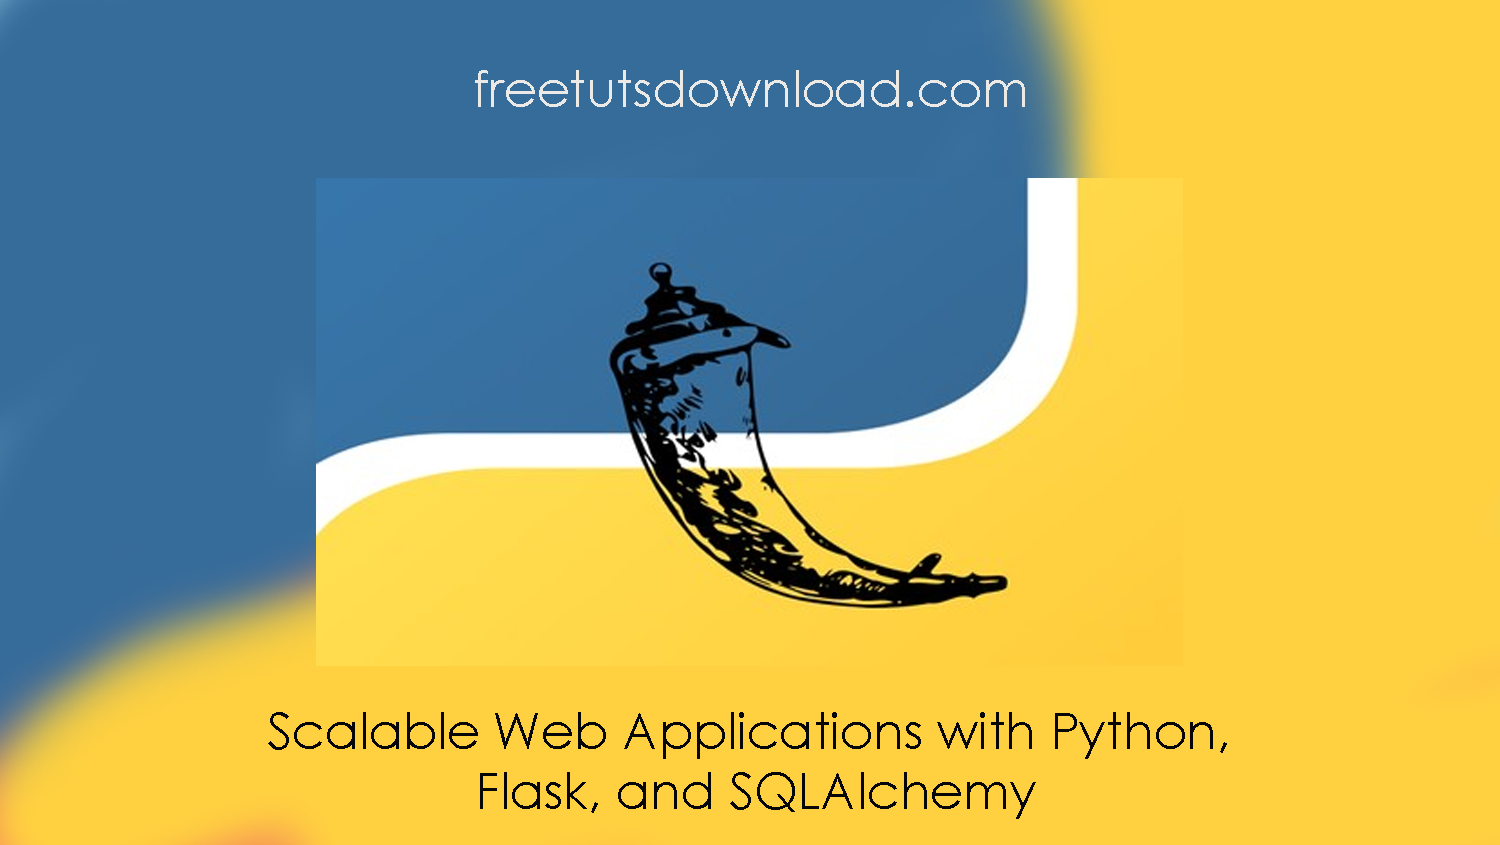 Scalable Web Applications with Python, Flask, and SQLAlchemy free download